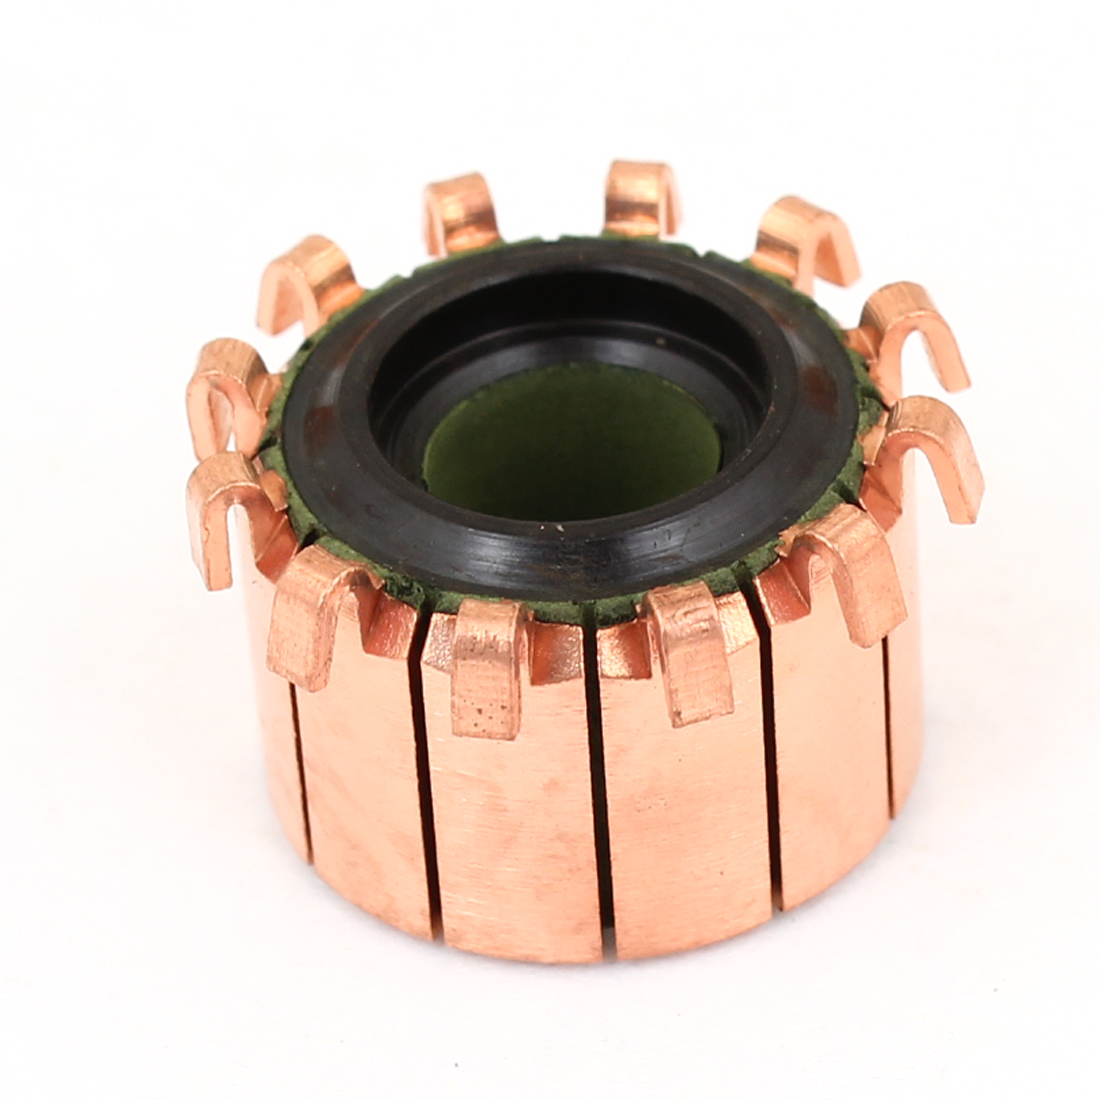 8mm x 18.9mm x 13.5mm Copper Case Auto Alternator Motor Power Tool Commutator